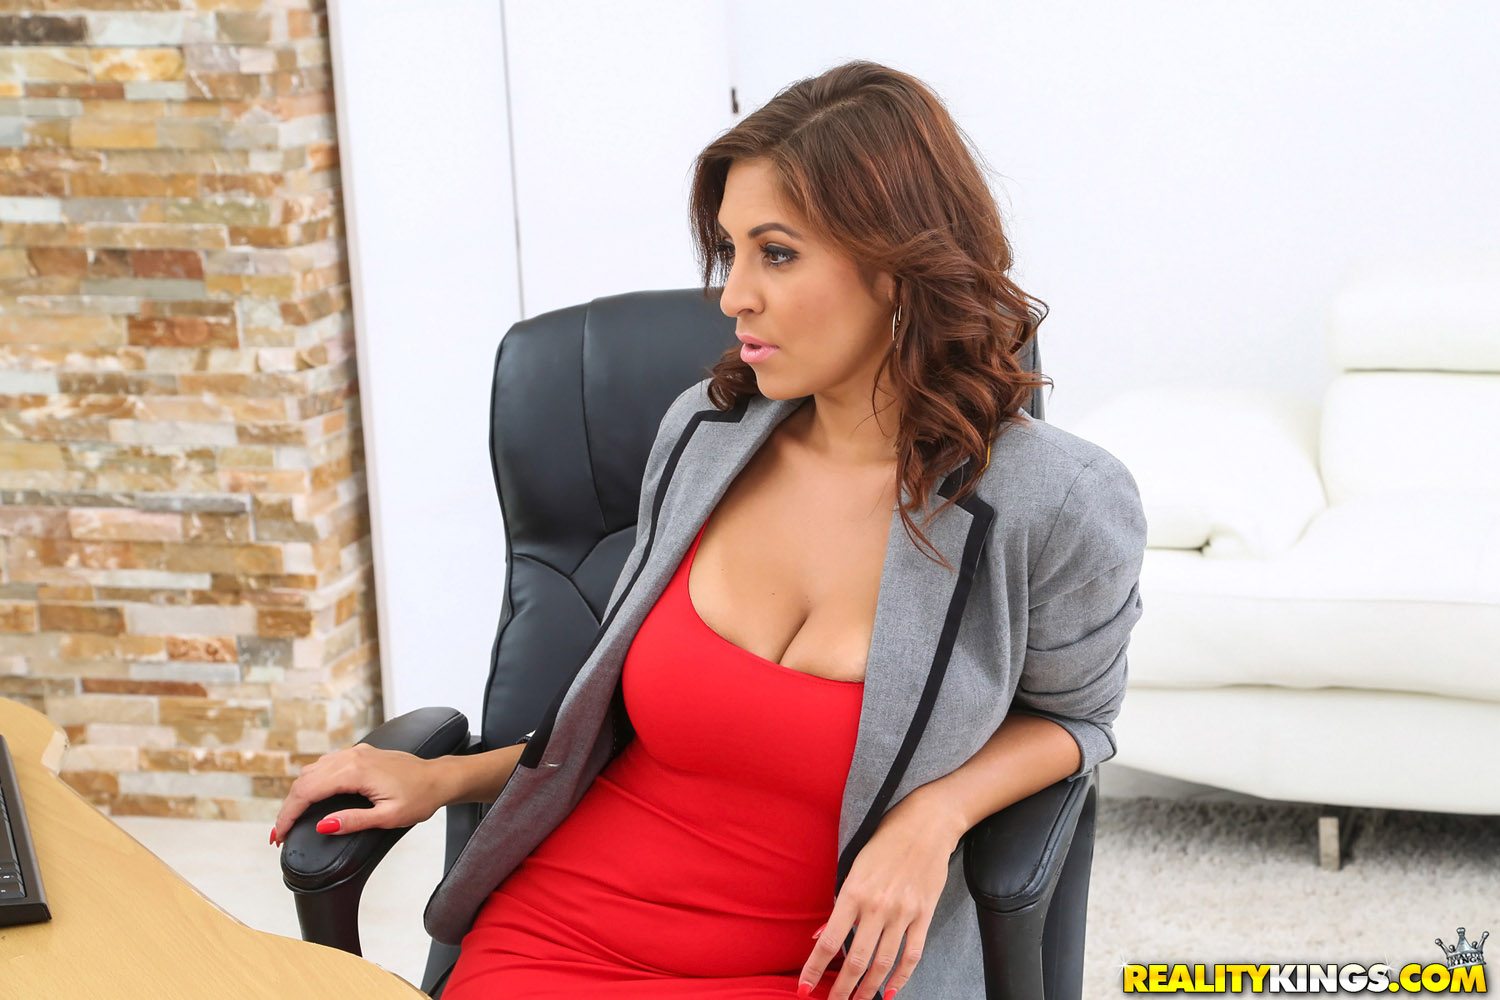 big-tits-boss videos, page 1 -